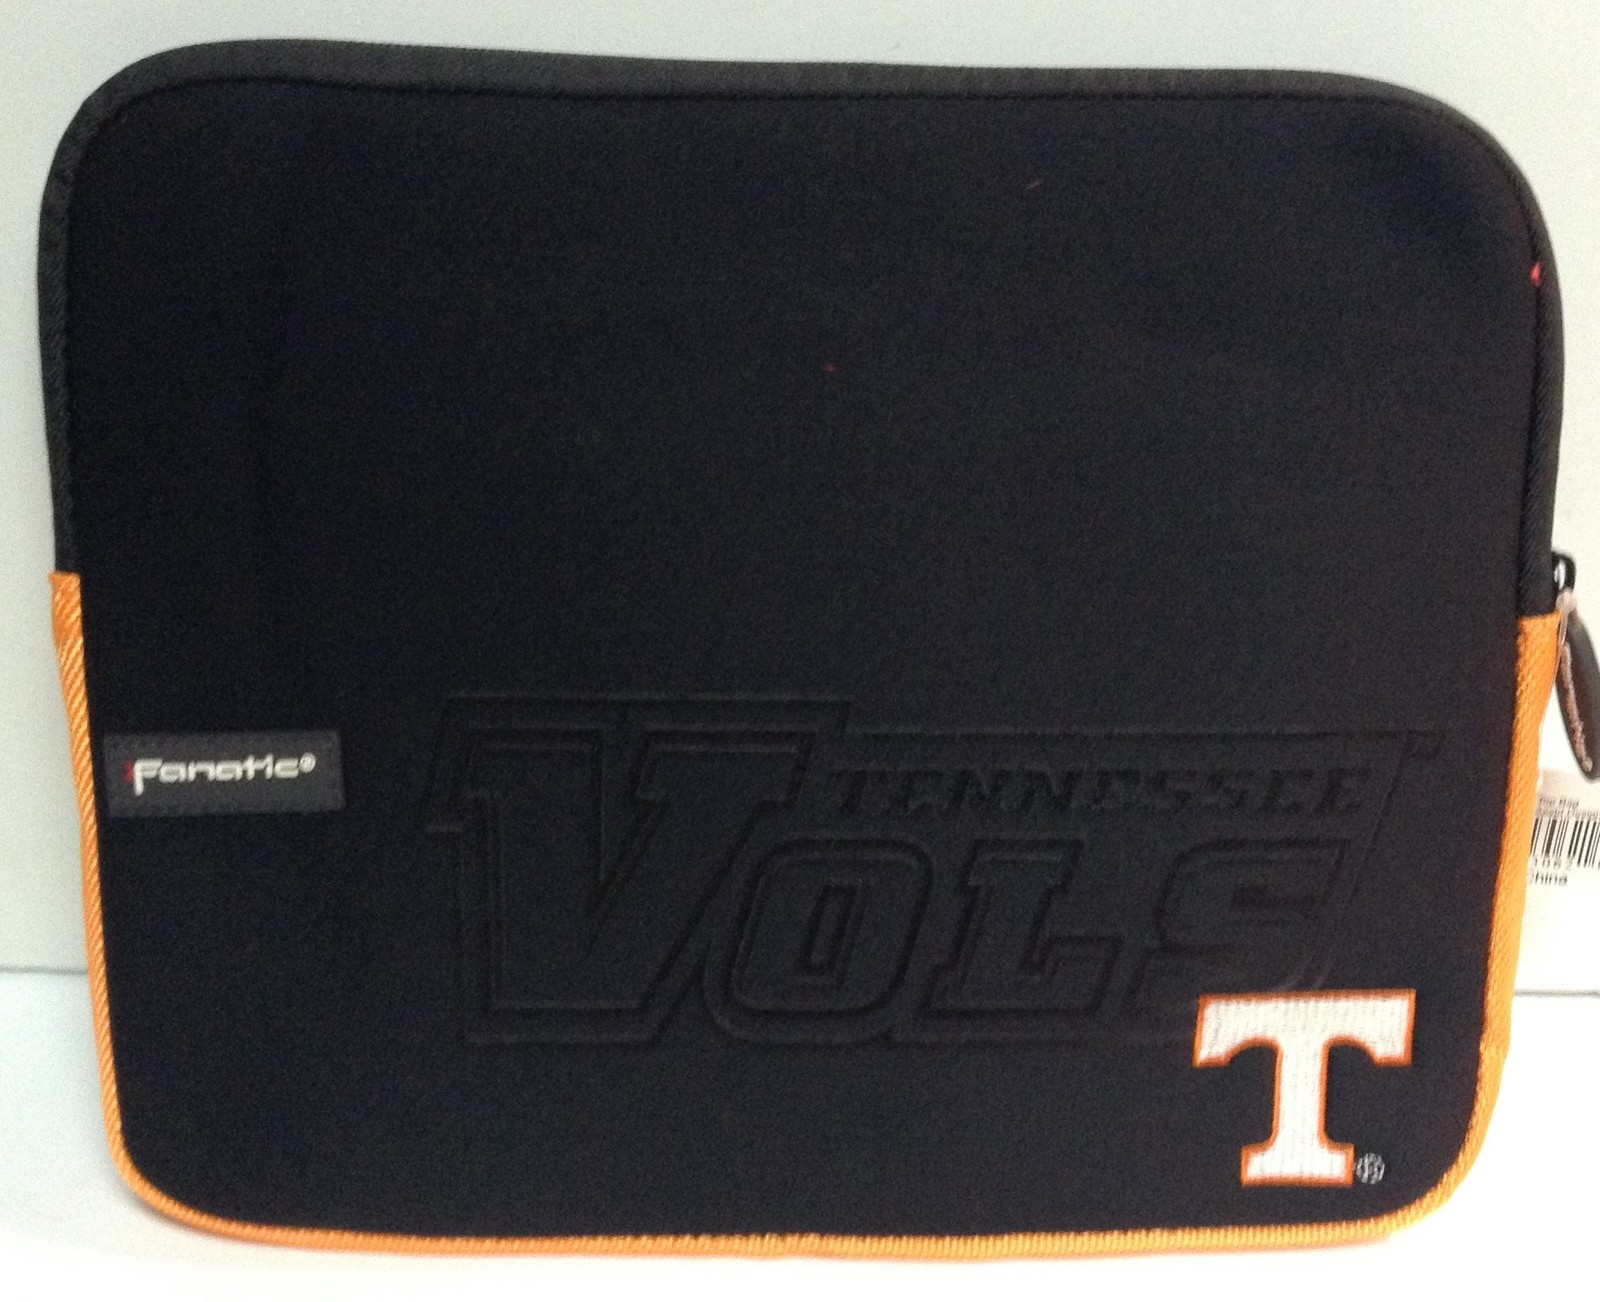 University of Tennessee Vols Ipad Laptop Protection Case